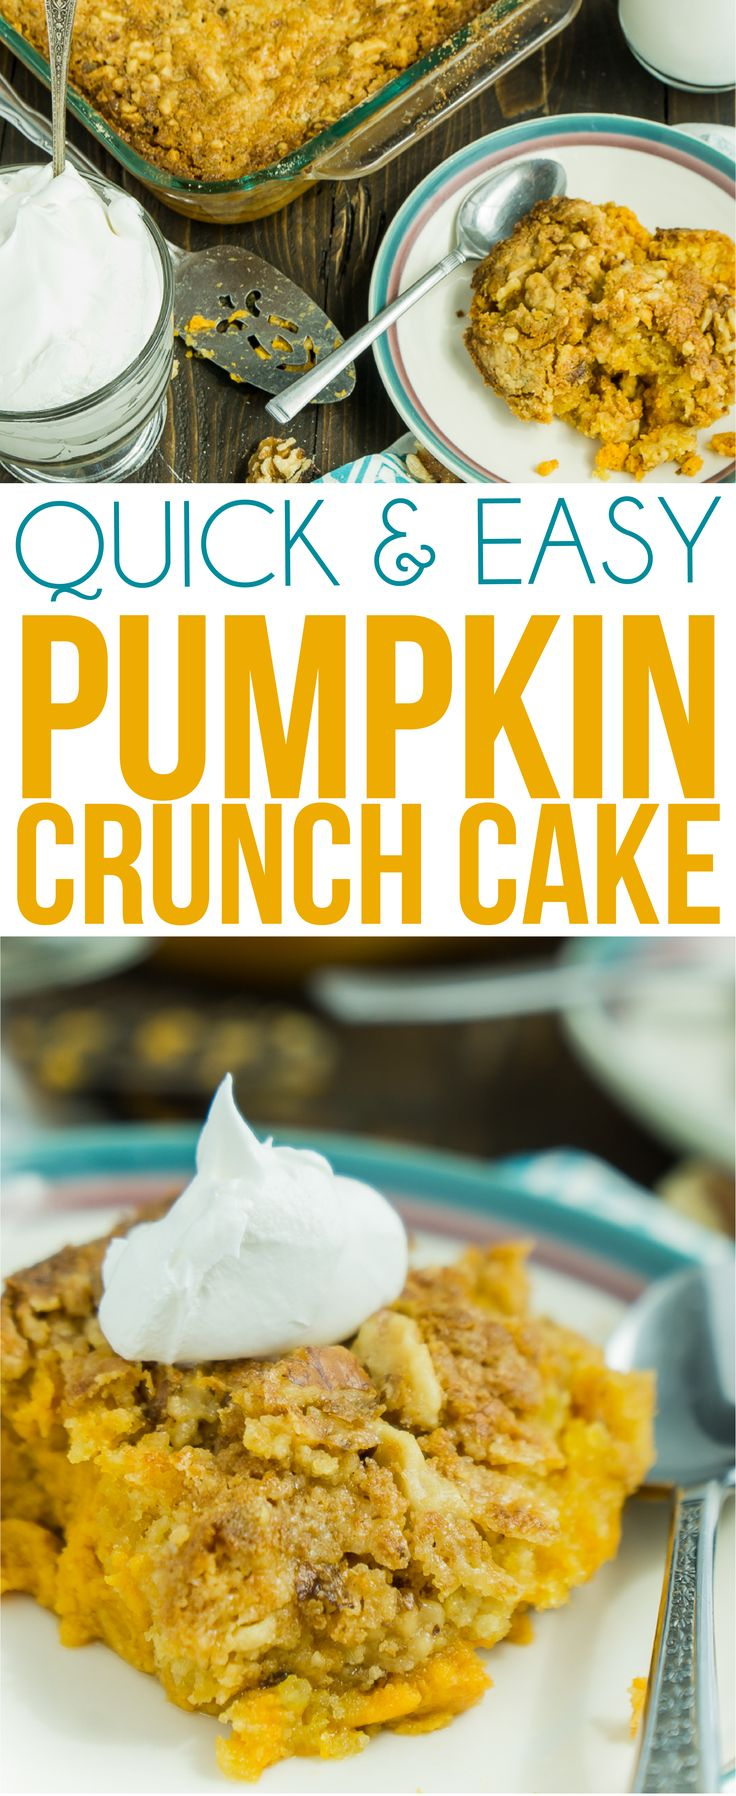 This Pumpkin crunch cake recipe is one of the best pumpkin recipes out there! It's easy to make, quick to mix up, and one of our favorite pumpkin desserts ever. Simply mixed canned pumpkin with cake mix and a few other ingredients for one great fall dessert!